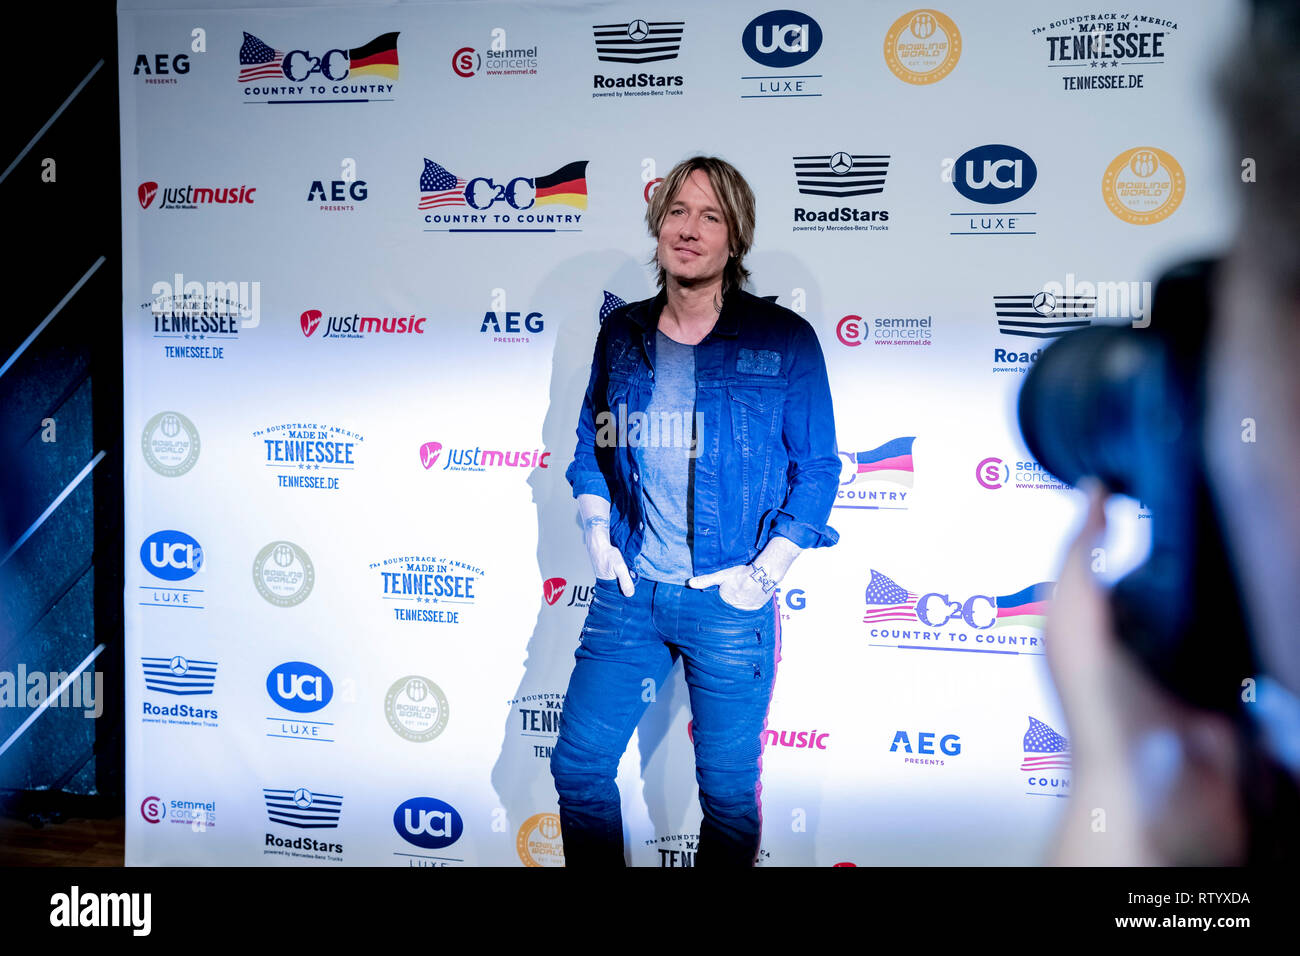 Berlin, Germany. 03rd Mar, 2019. Keith Urban, singer, is at the C2C: Country to Country Festival in Berlin at a press conference in front of a photo wall. Credit: Christoph Soeder/dpa/Alamy Live News - Stock Image